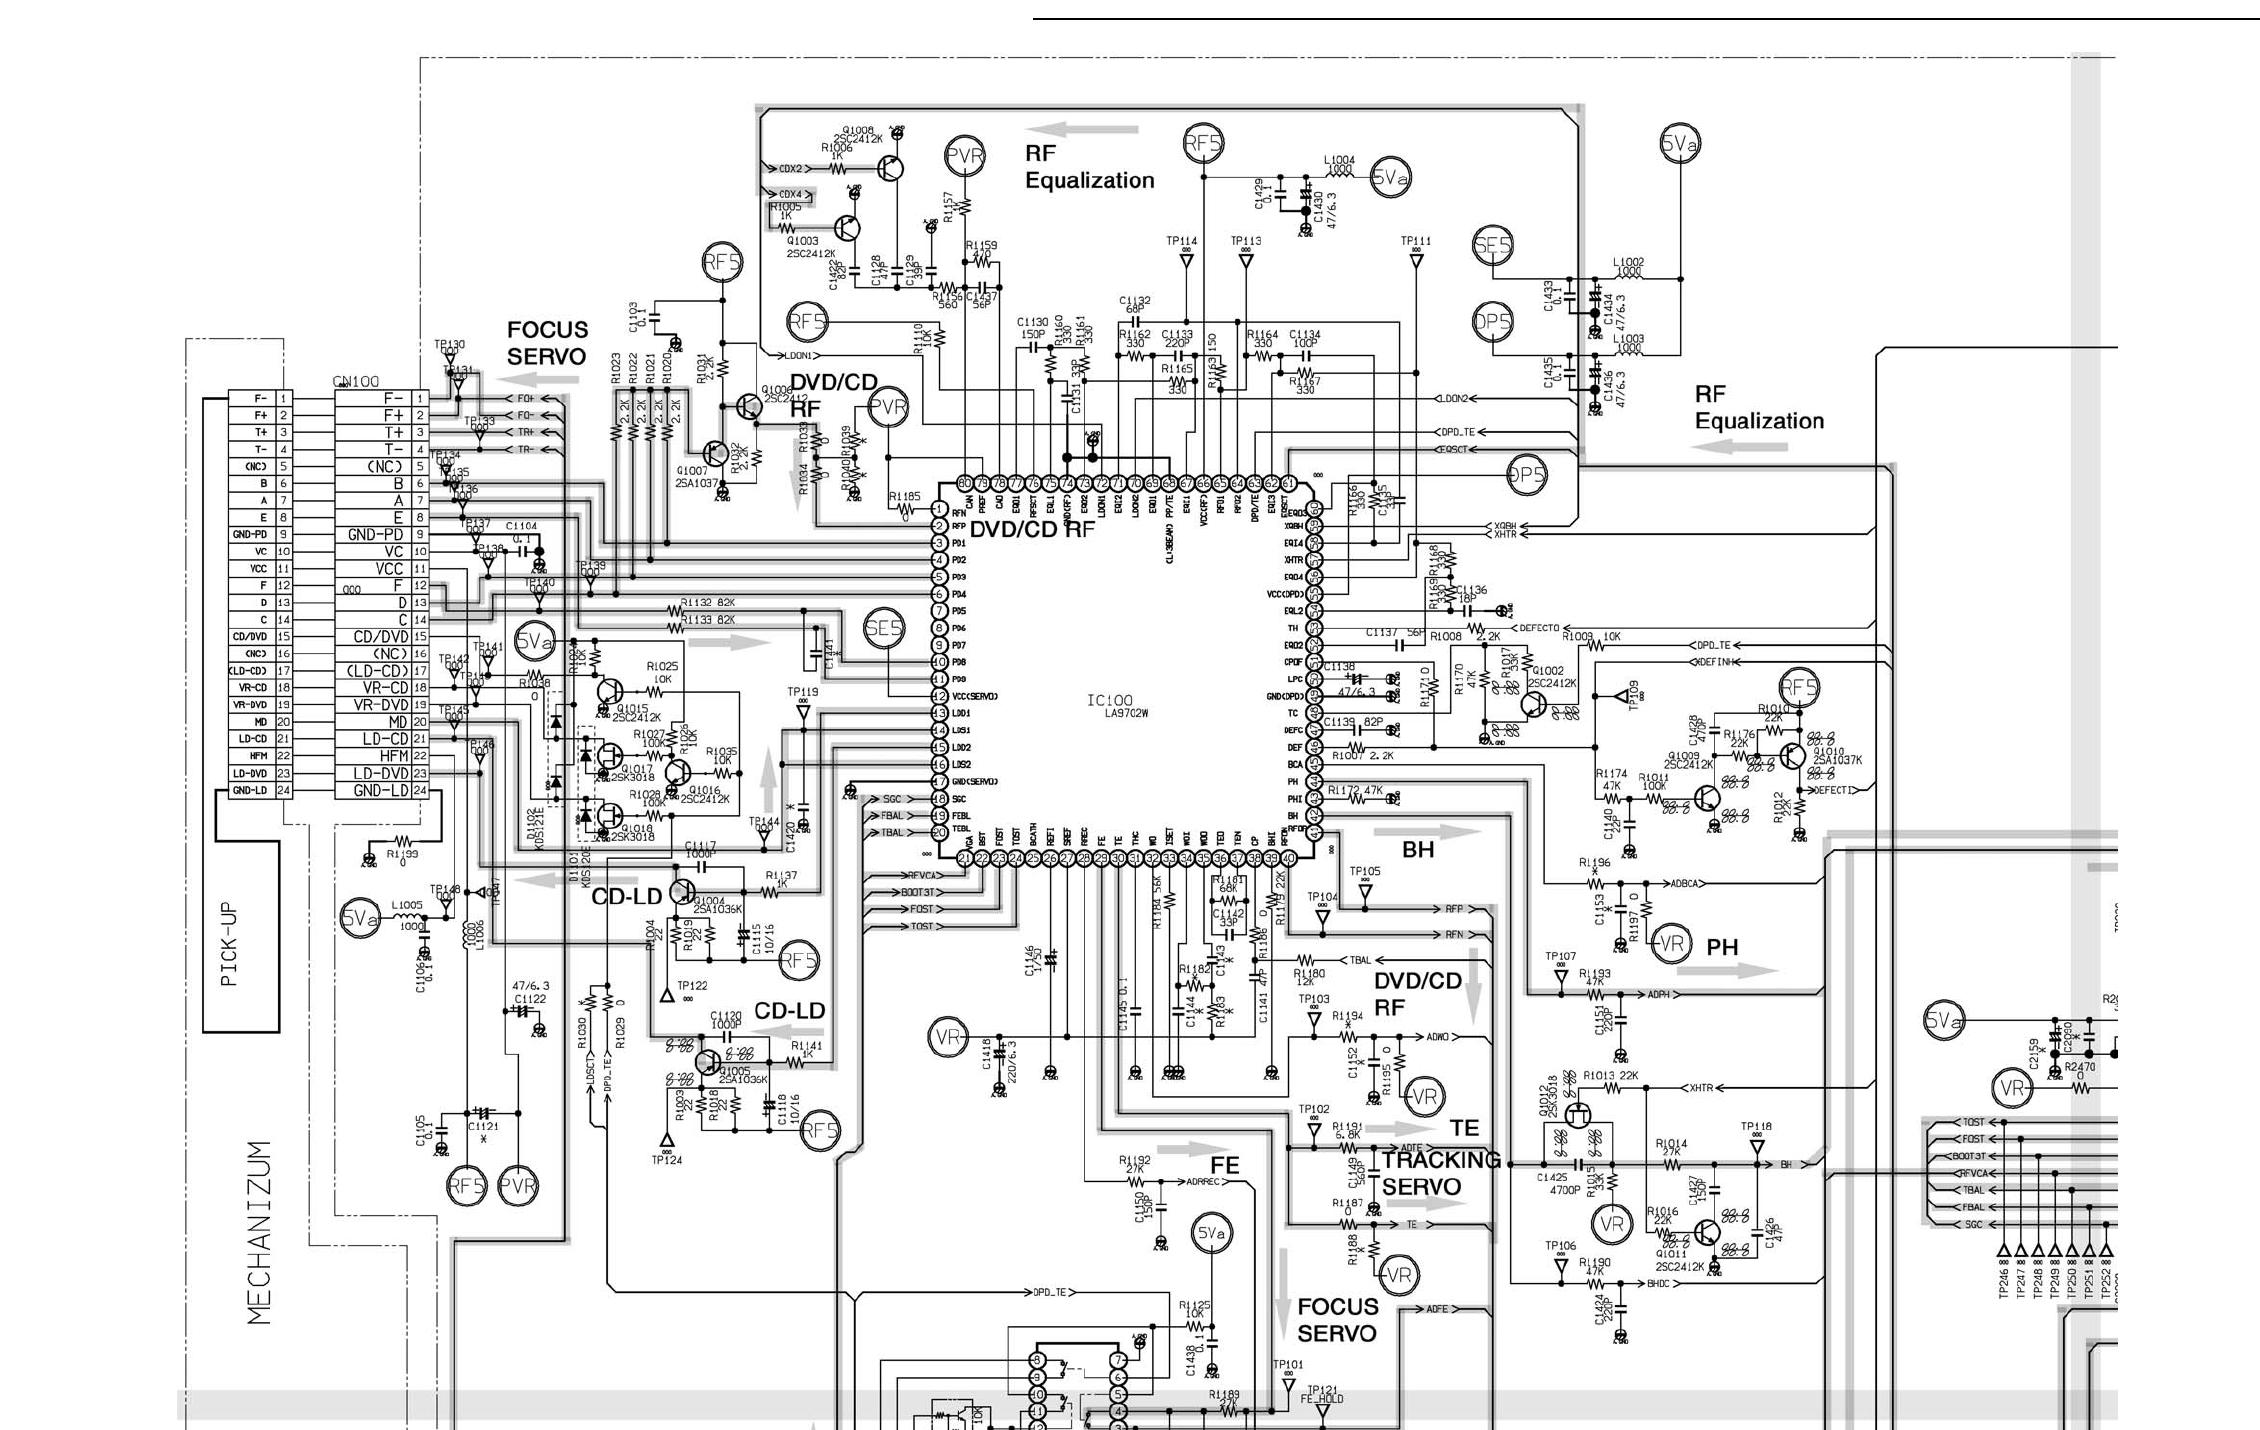 page 10 of sanyo dvd player dvd 9501 user guide manualsonline com 11 10 dvd p w board operation schematic